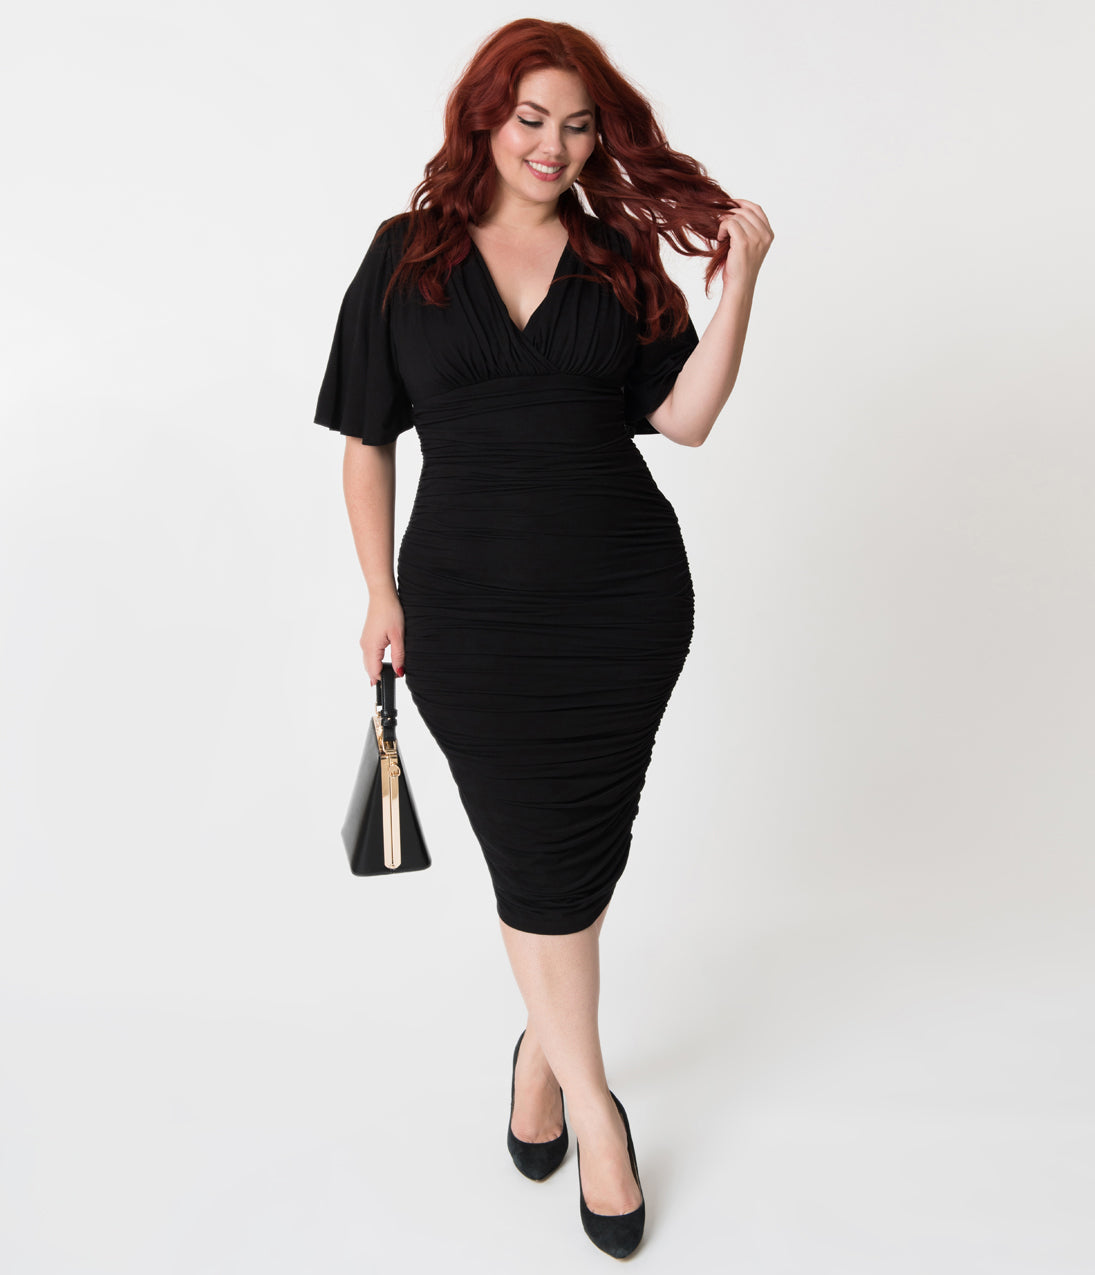 Rockabilly Dresses | Rockabilly Clothing | Viva Las Vegas Plus Size Vintage Style Black Ruched Flutter Sleeve Rumor Wiggle Dress $108.00 AT vintagedancer.com